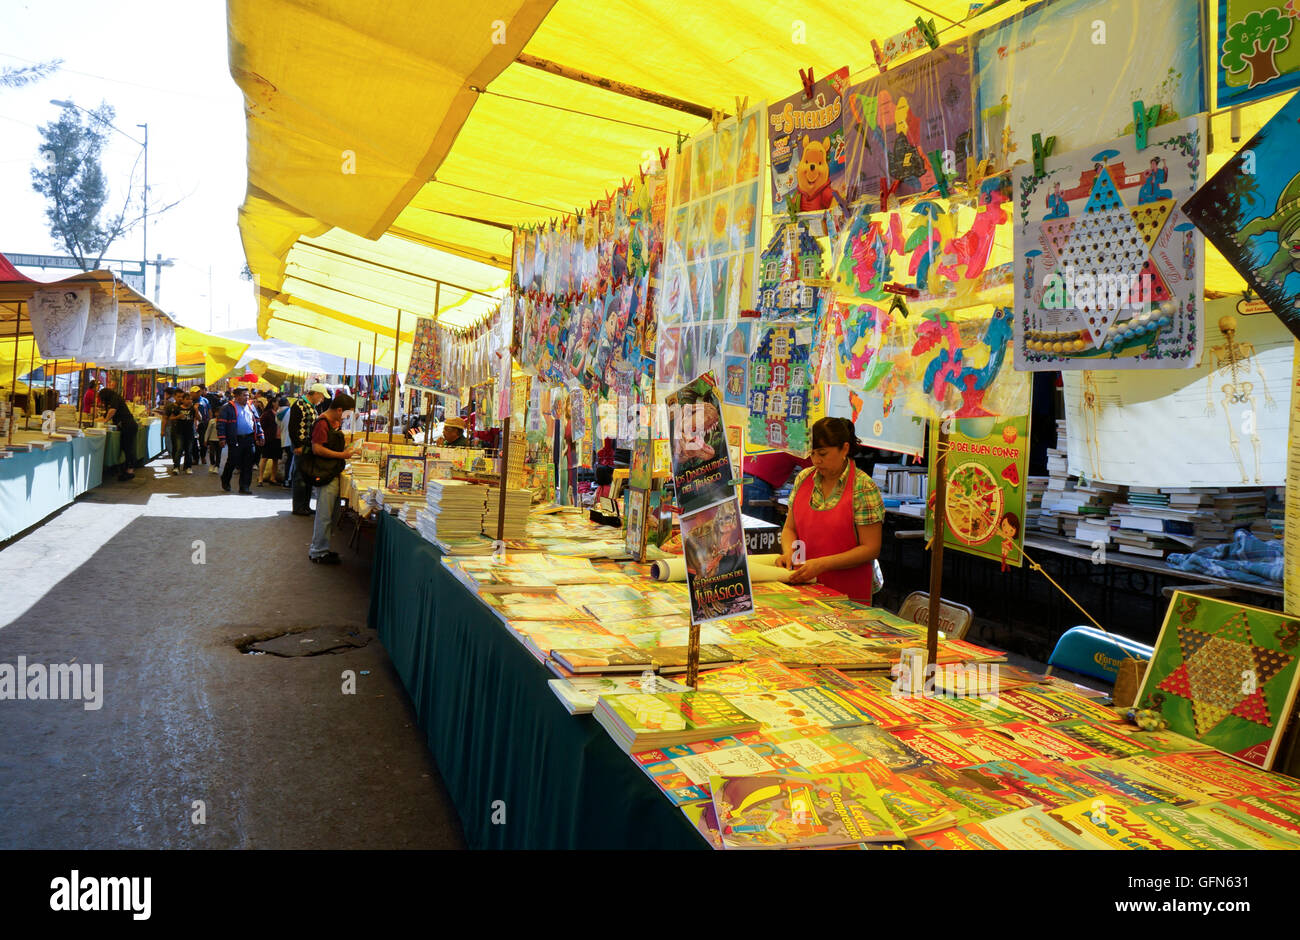 Booksellers in the Lagunilla Market in Mexico City, Mexico - Stock Image